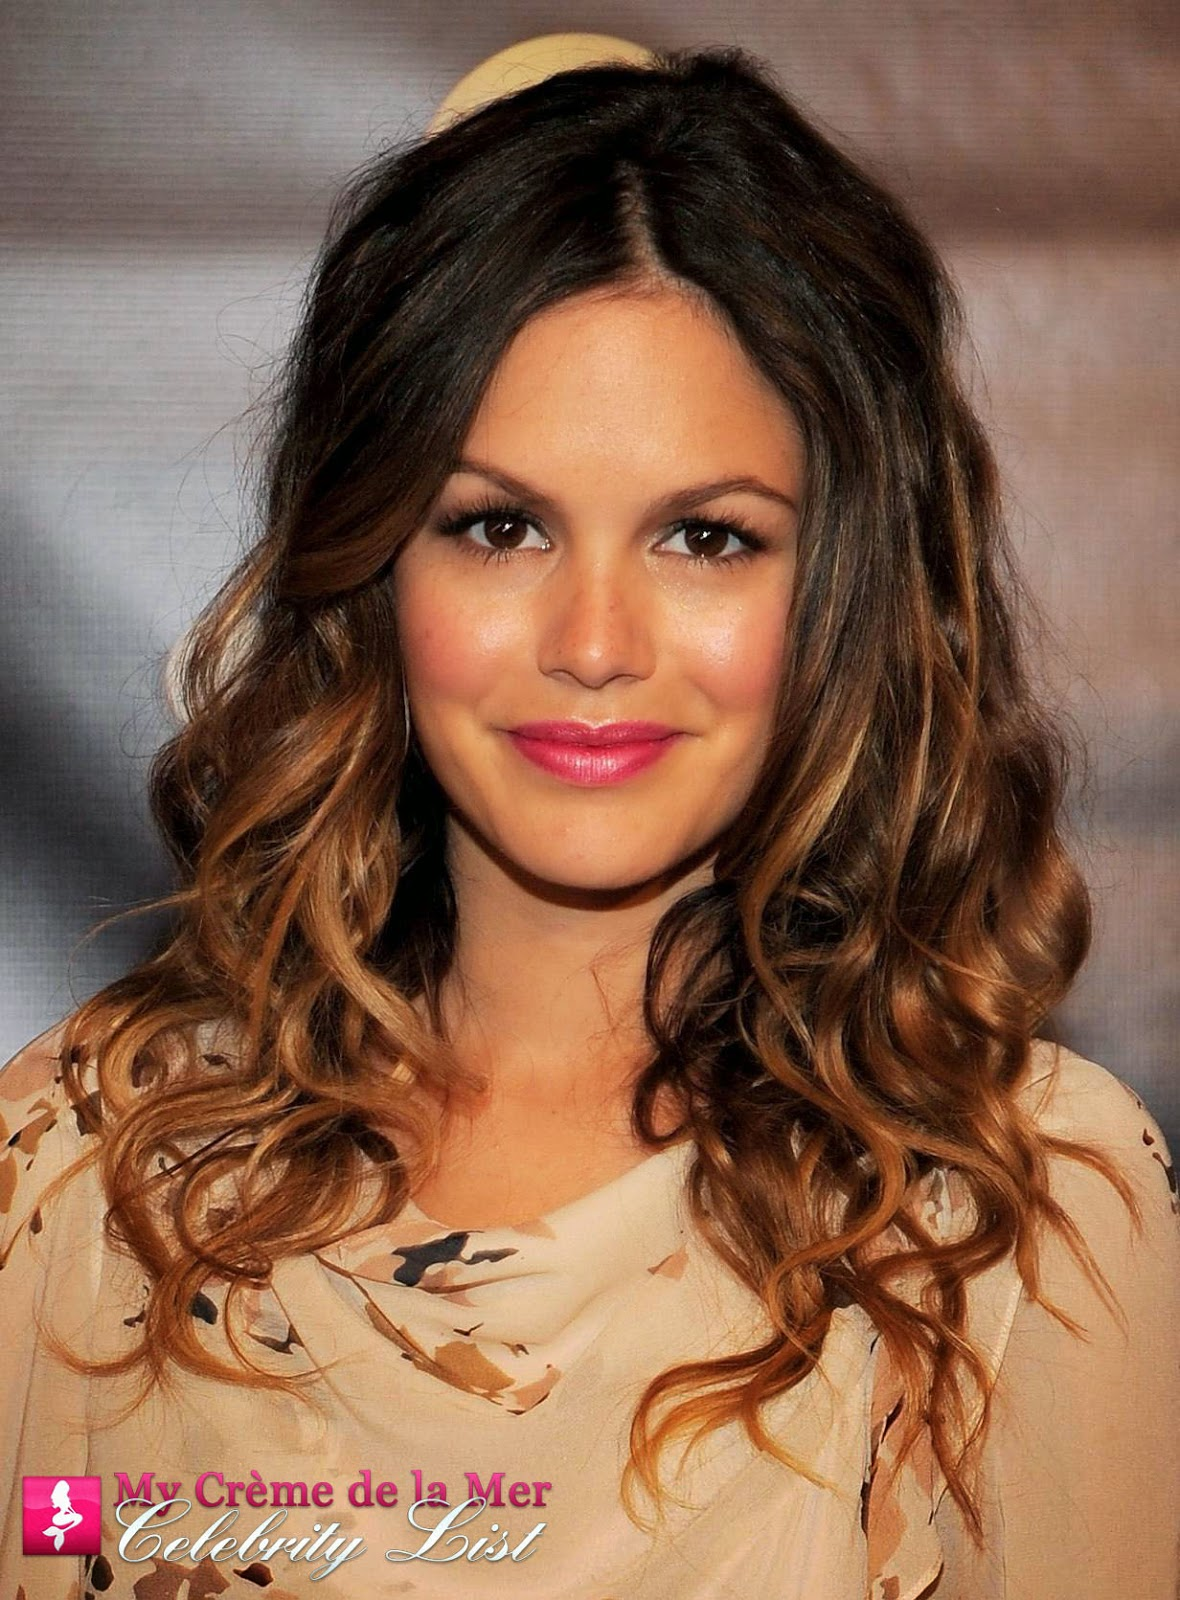 Jumper and The O.C. actress Rachel Bilson is on the My Crème de la mer Celebrity List - she uses La Mer and says;